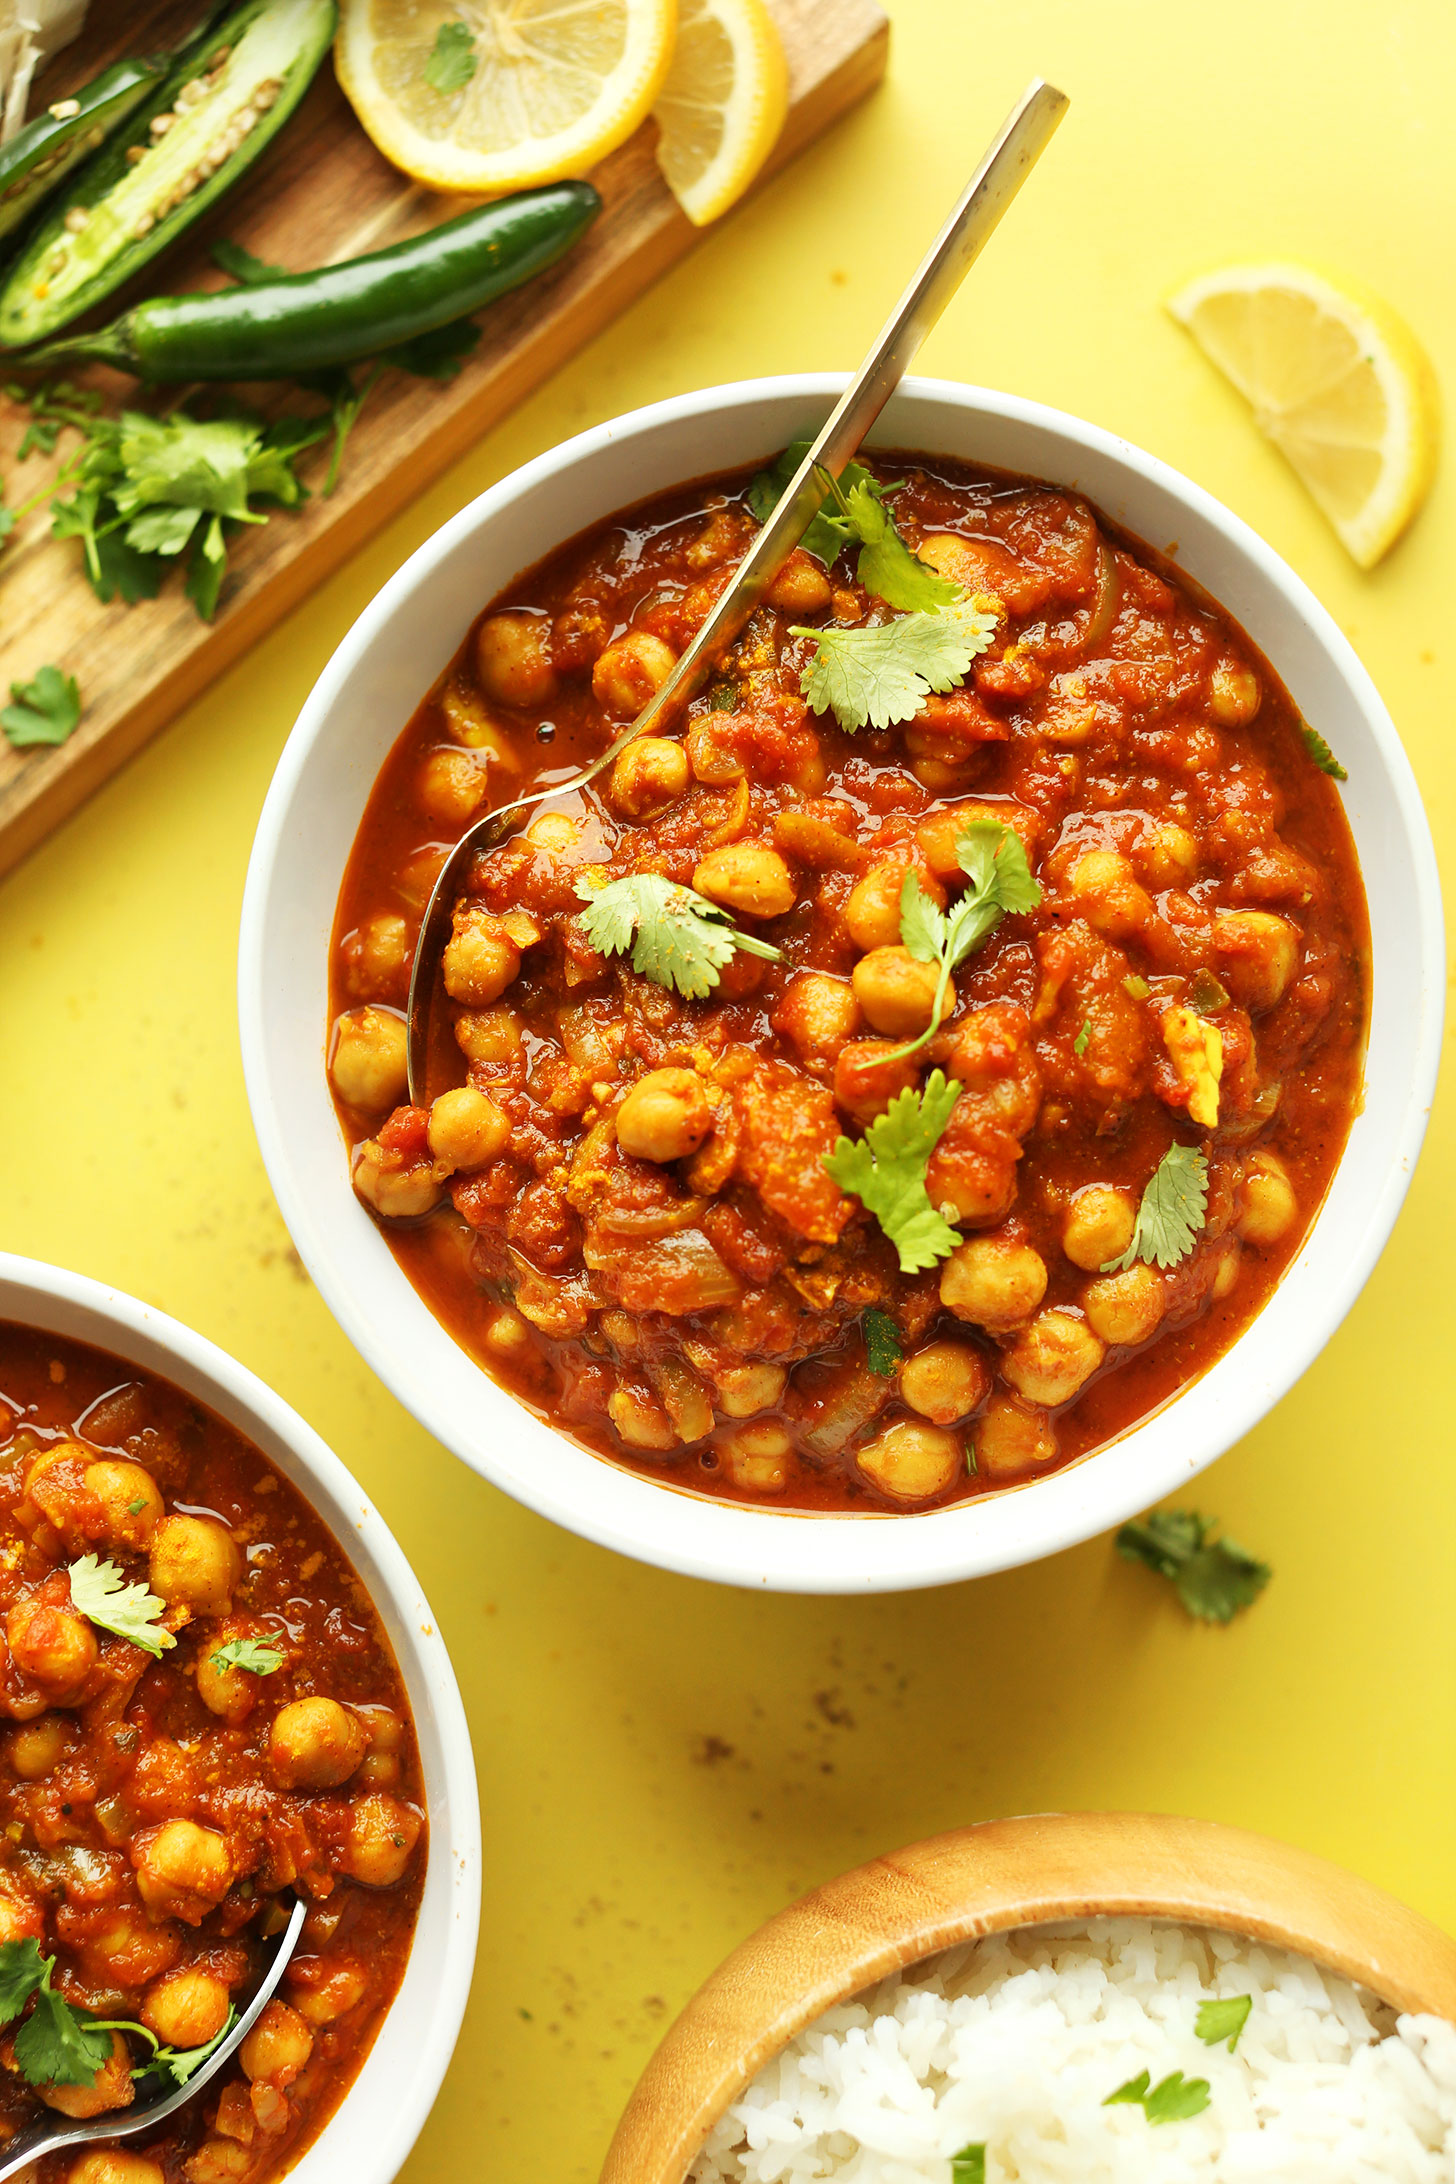 Six Delicious Vegan Recipes - Easy Chana Masala | Minimalist Baker